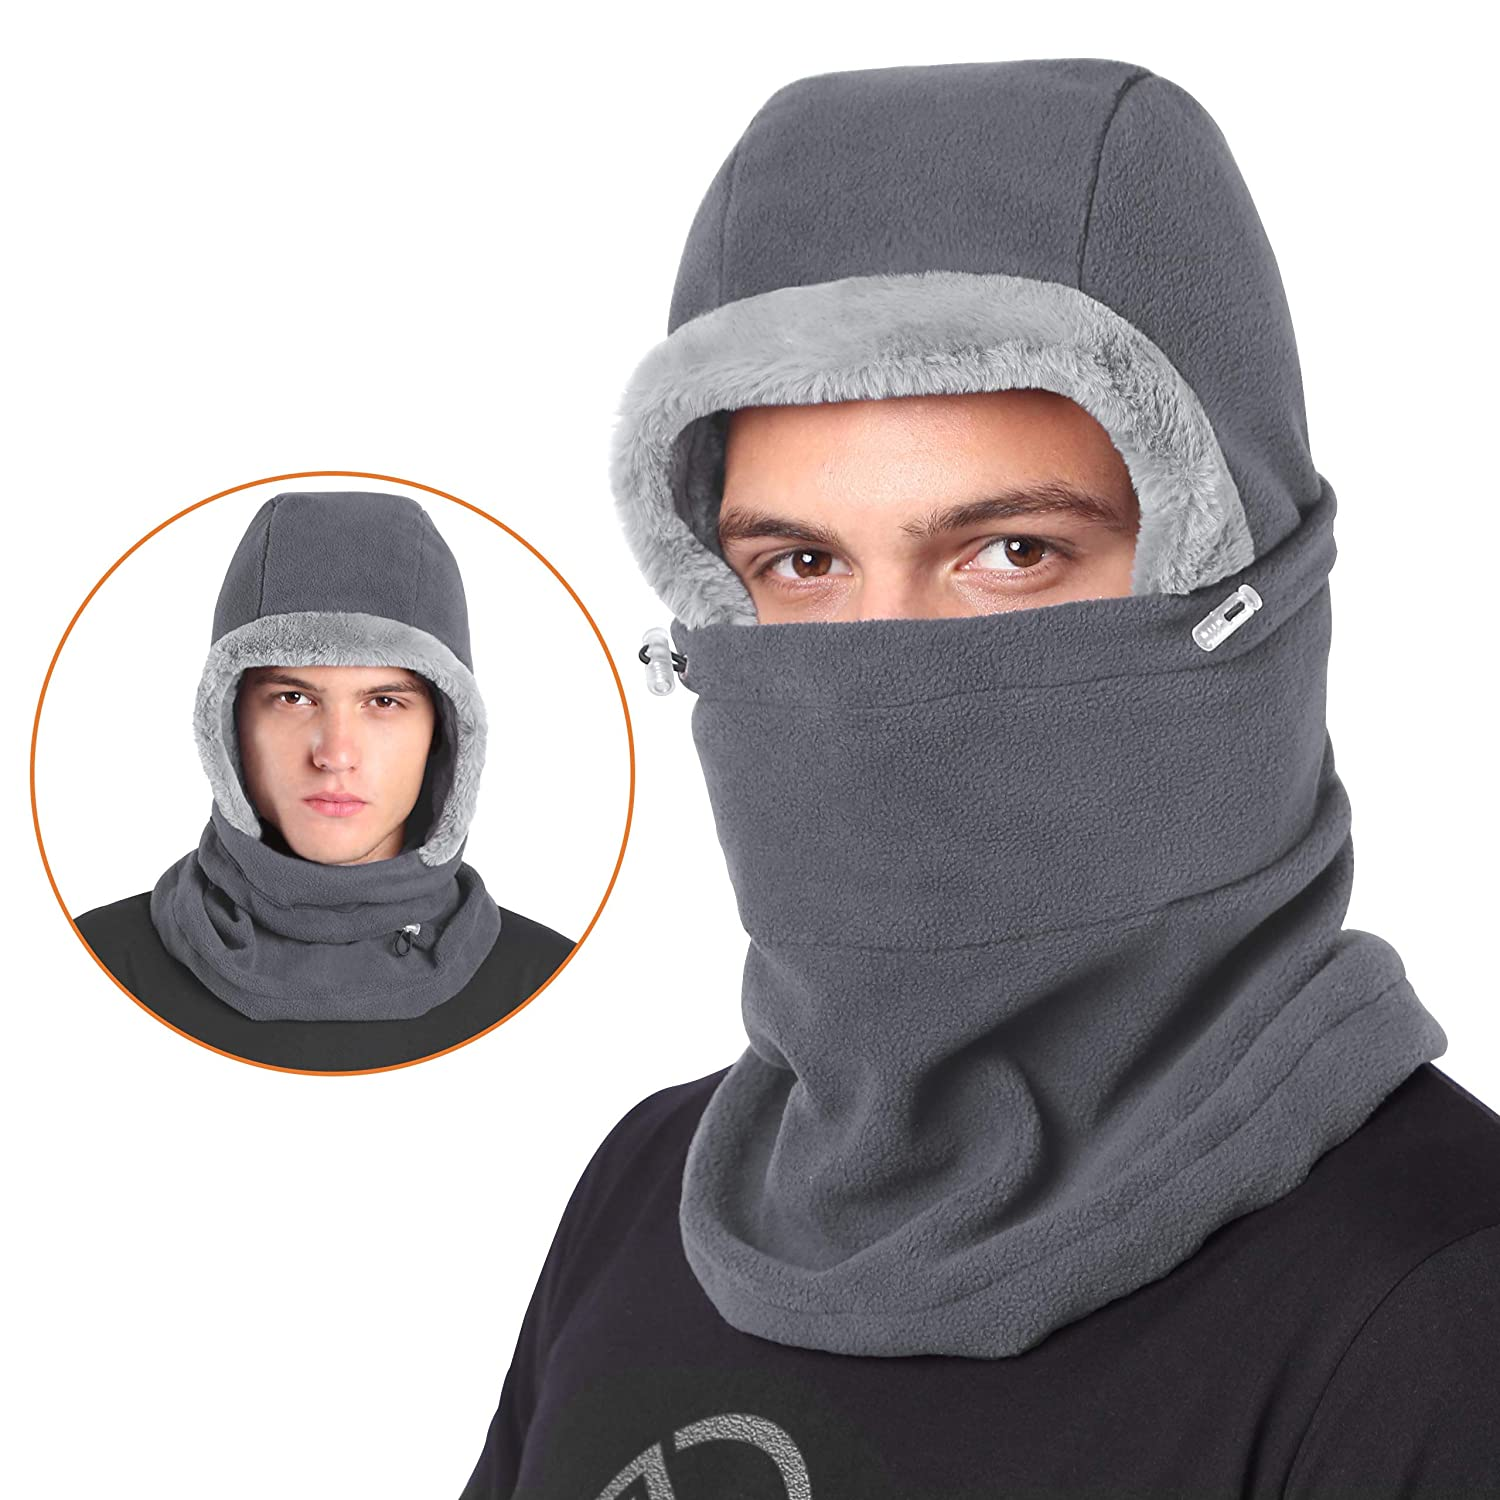 DIMPLES EXCEL Balaclava Fleece Hood Winter Warmer Ski Face Mask Men Women